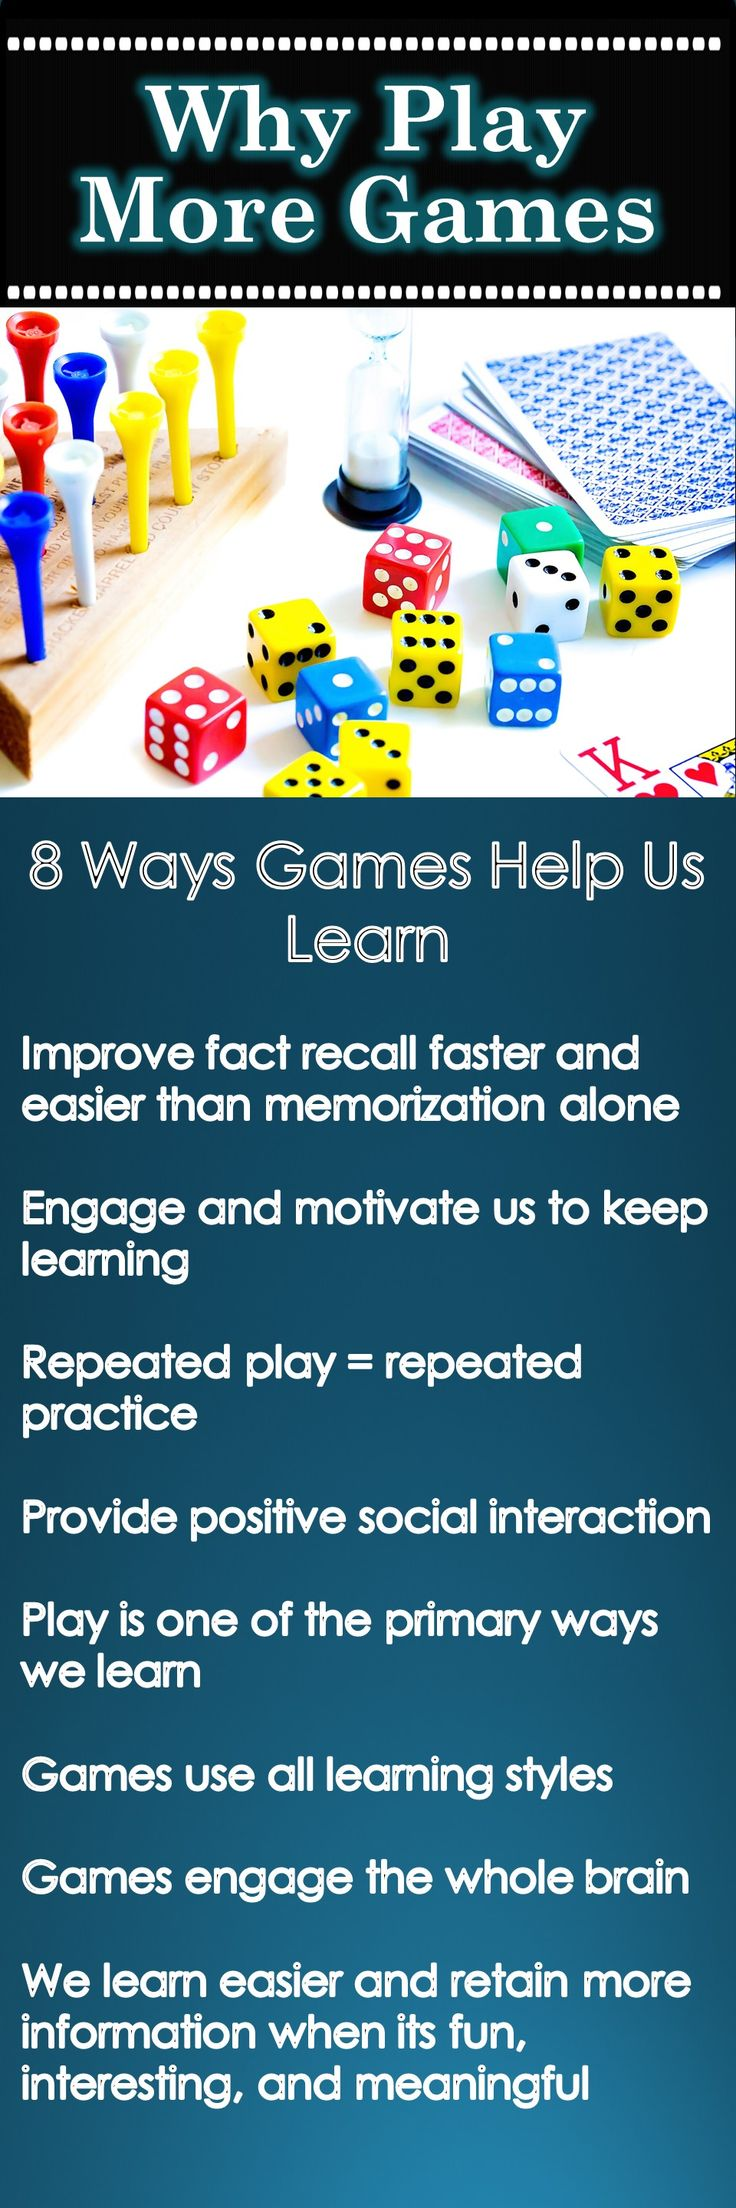 8 ways playing games can help us learn more games are one of the most